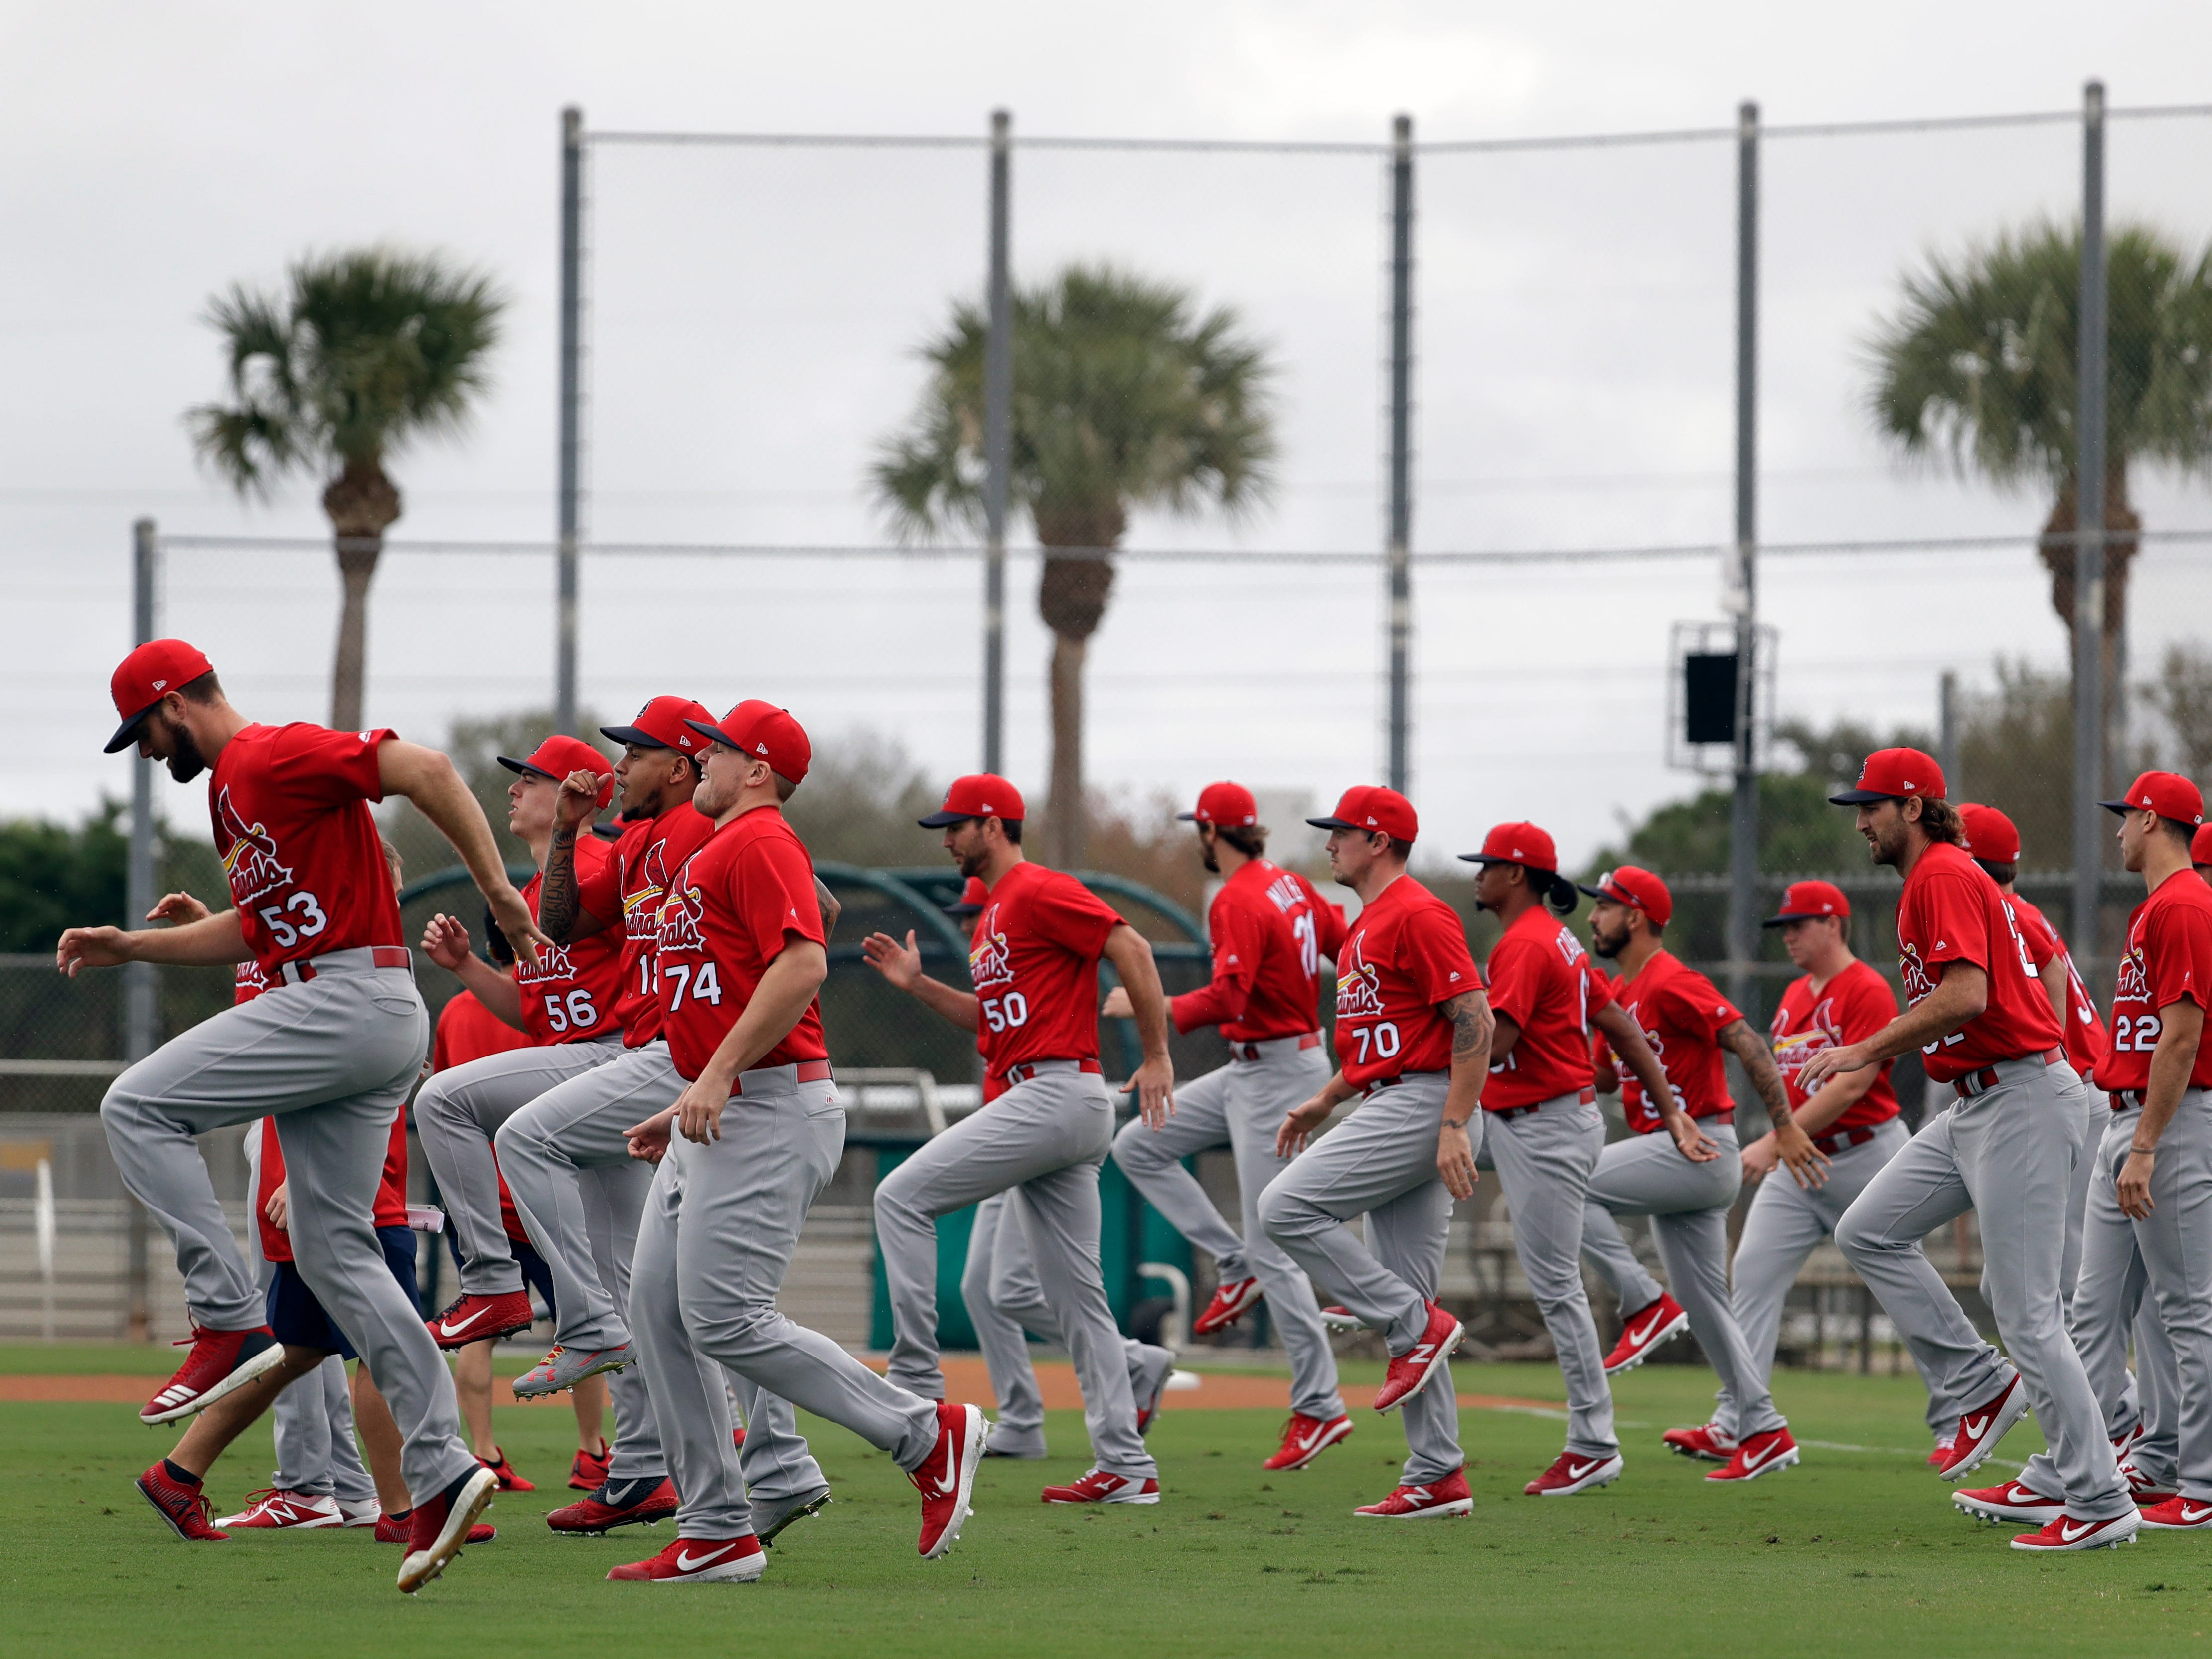 St. Louis Cardinals pitchers warm up at the start of spring training baseball practice Wednesday, Feb. 13, 2019, in Jupiter, Fla.